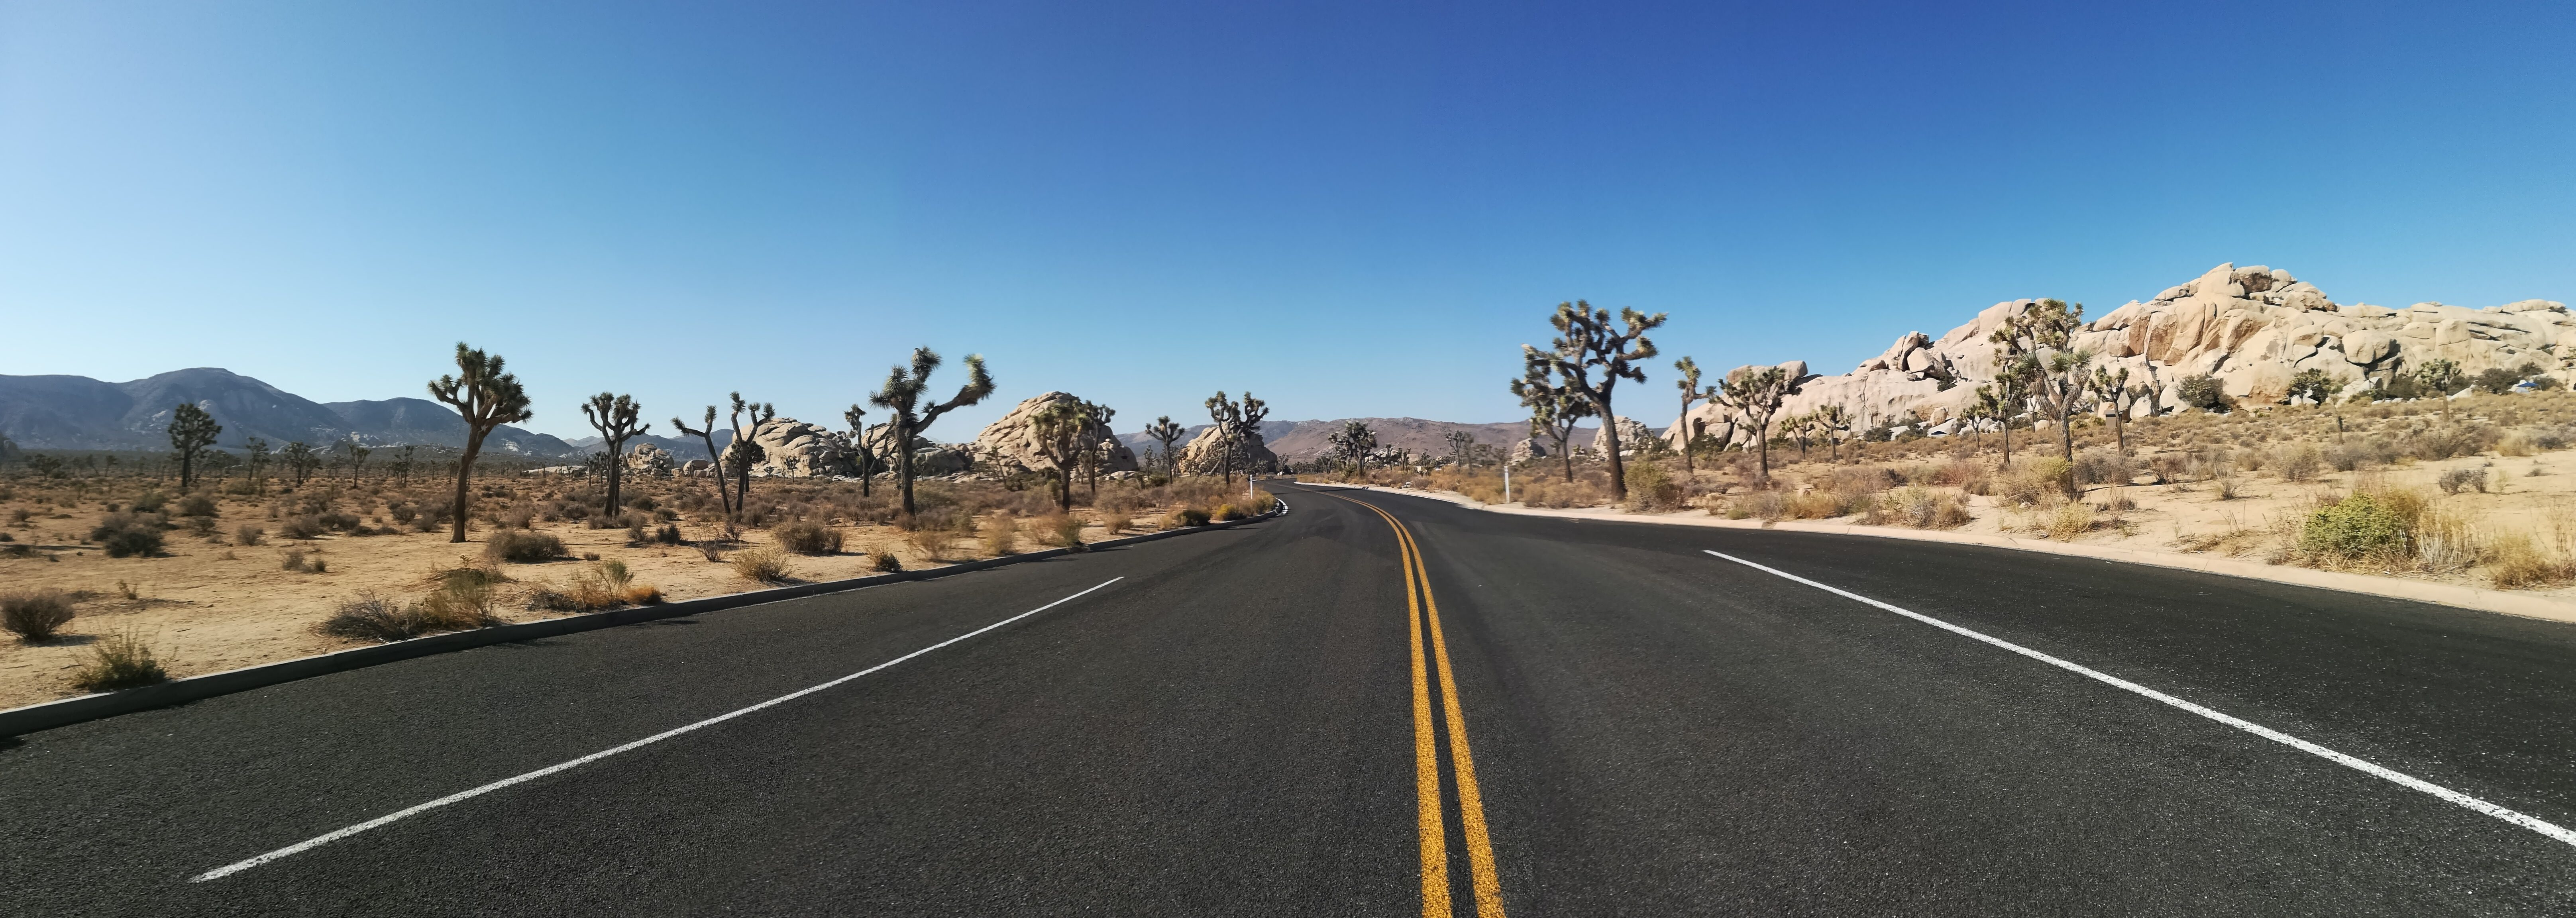 visiter joshua tree - road - tree